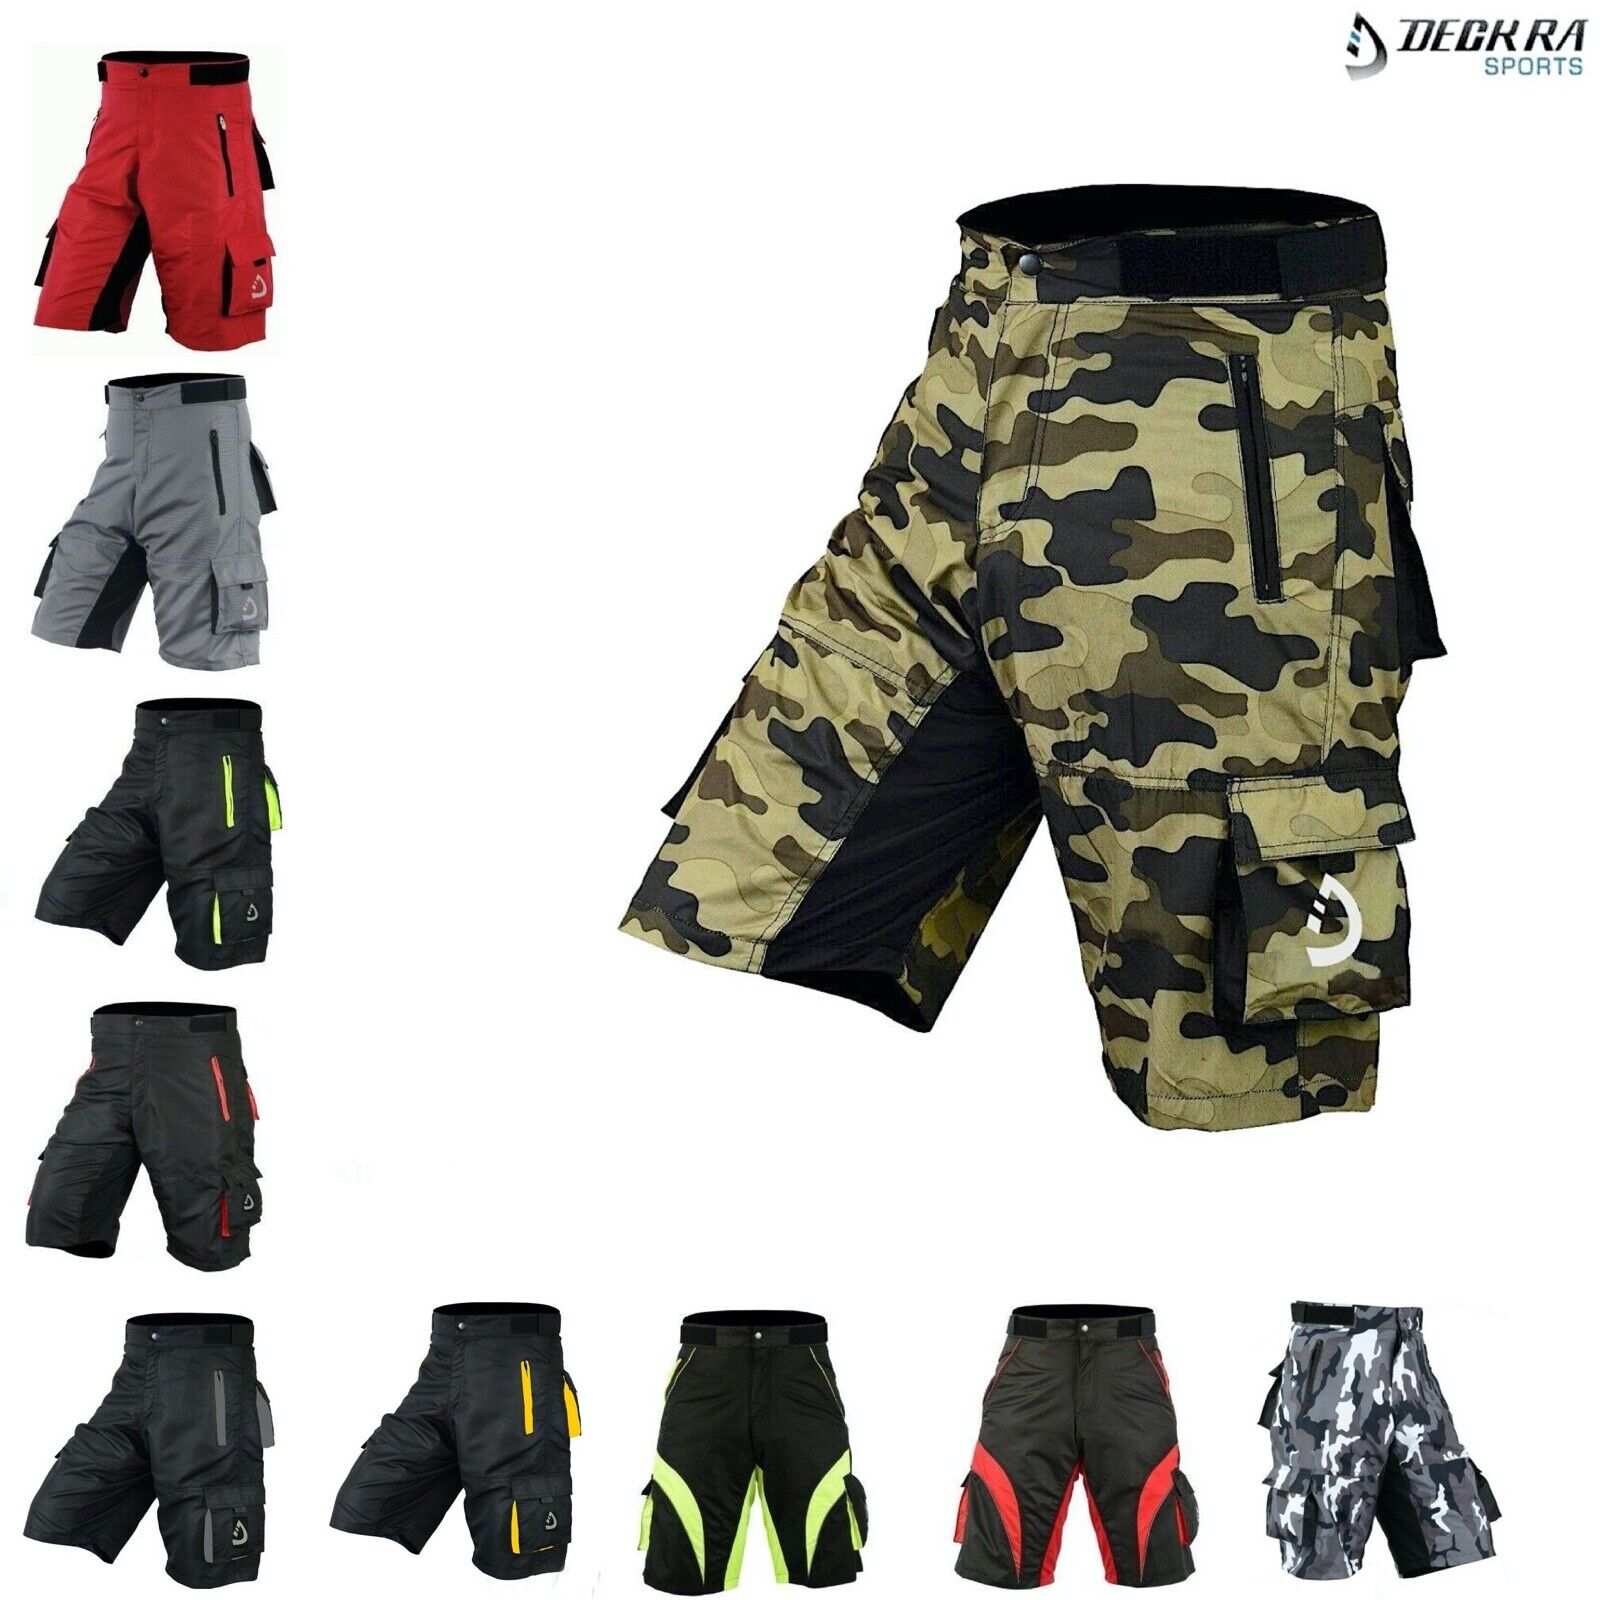 Deckra Mens Cycling MTB Short High Quality Padded Off Road S